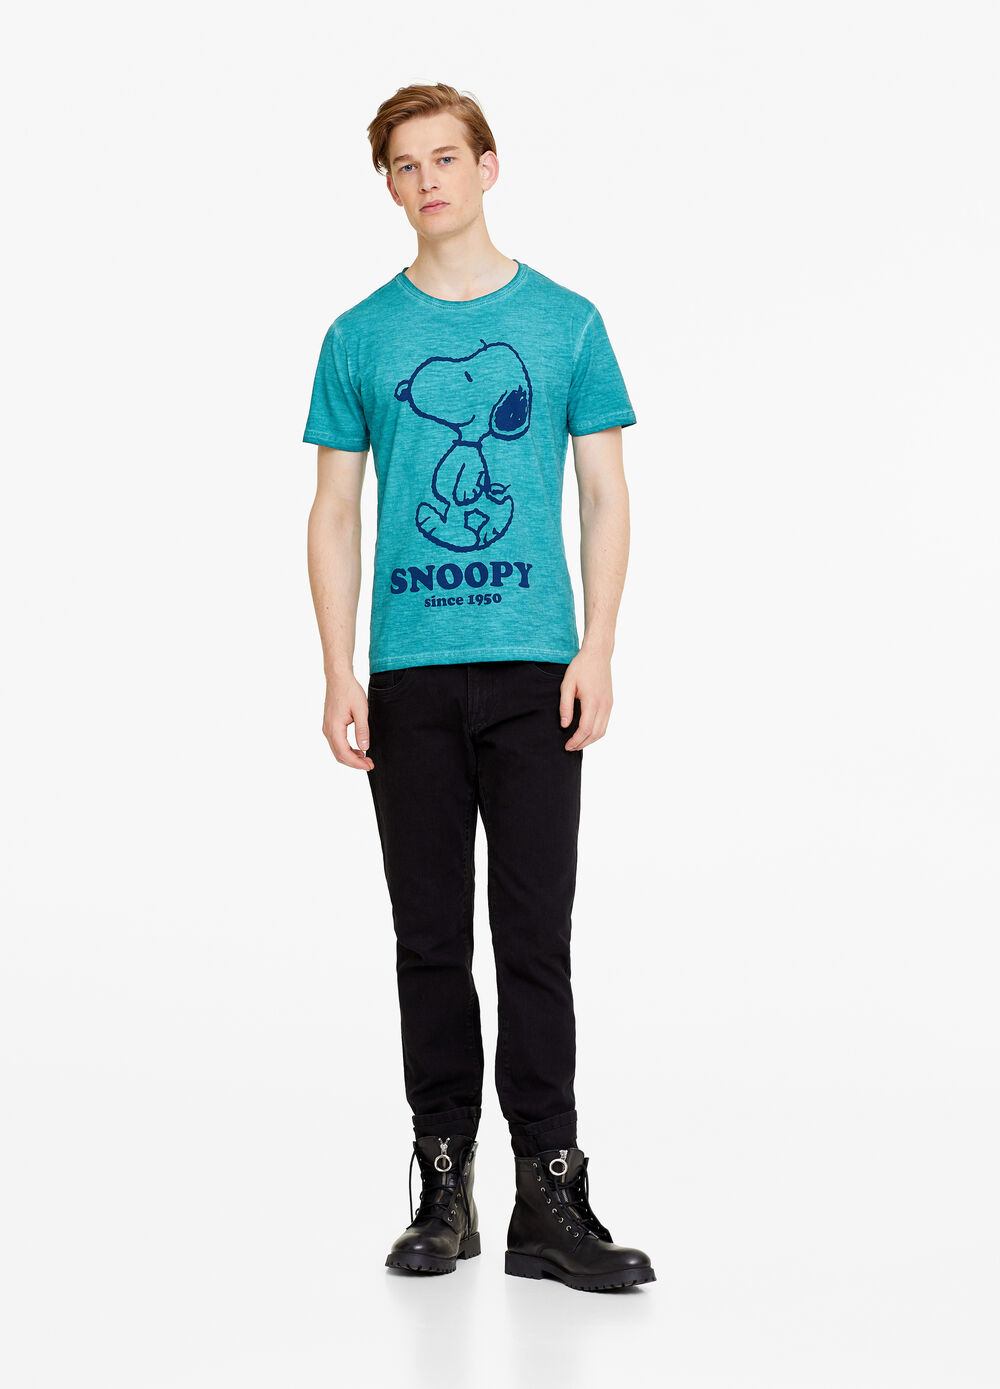 100% cotton T-shirt with Peanuts print